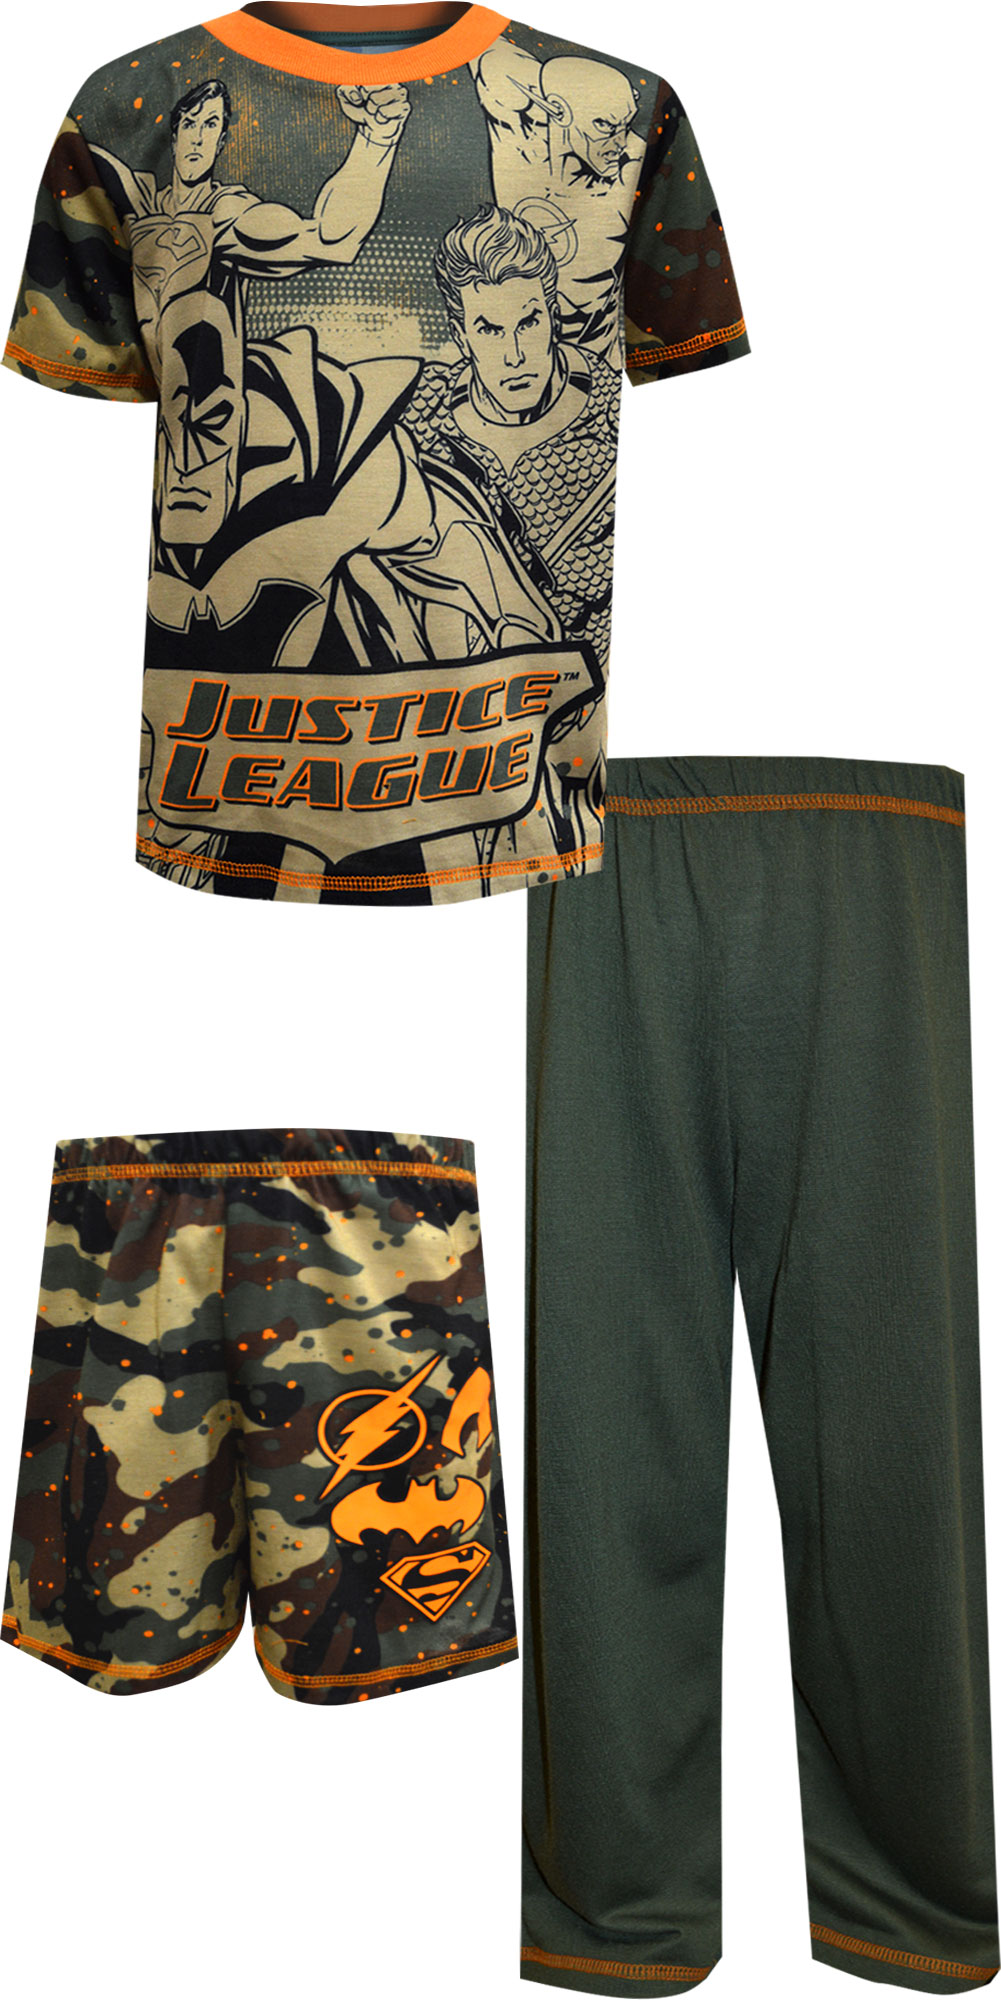 Image of Justice League Characters Camo 3 Piece Pajama Set for boys